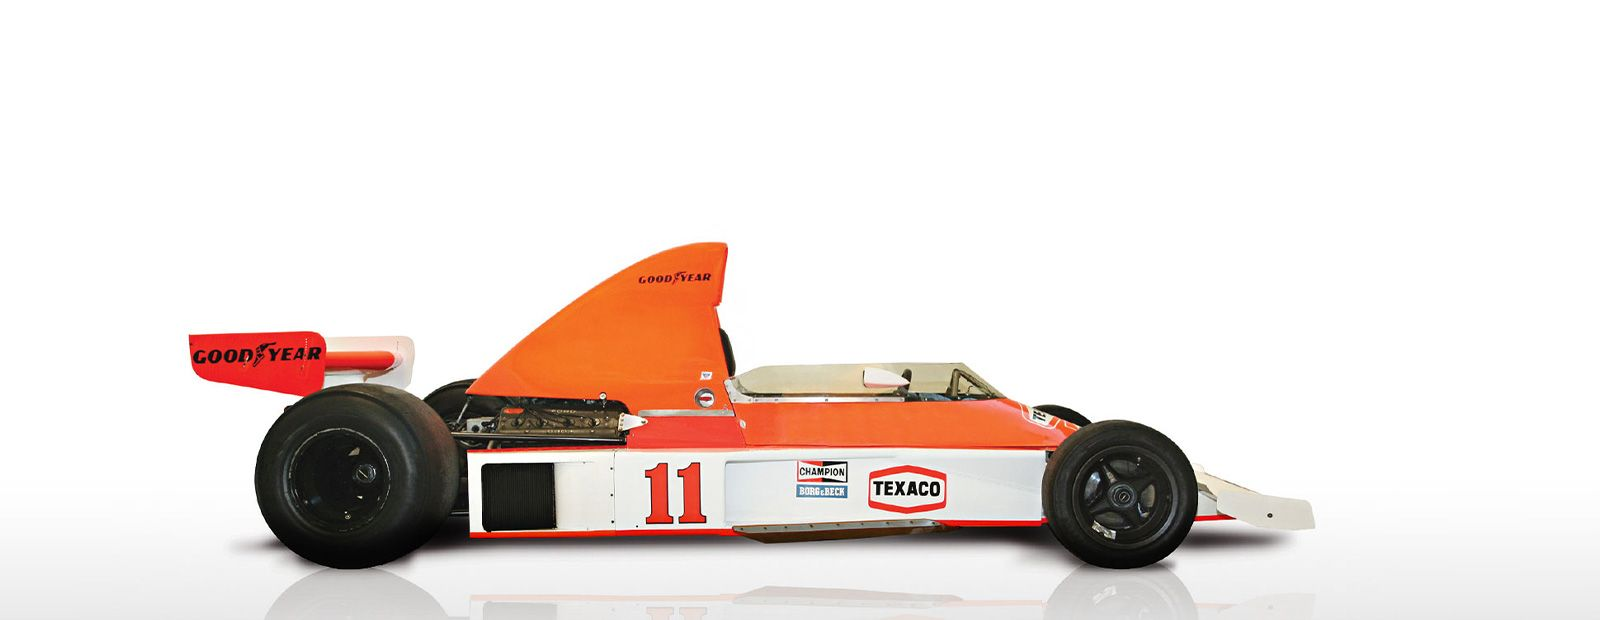 latest news from the mclaren-honda formula 1 team. see team and